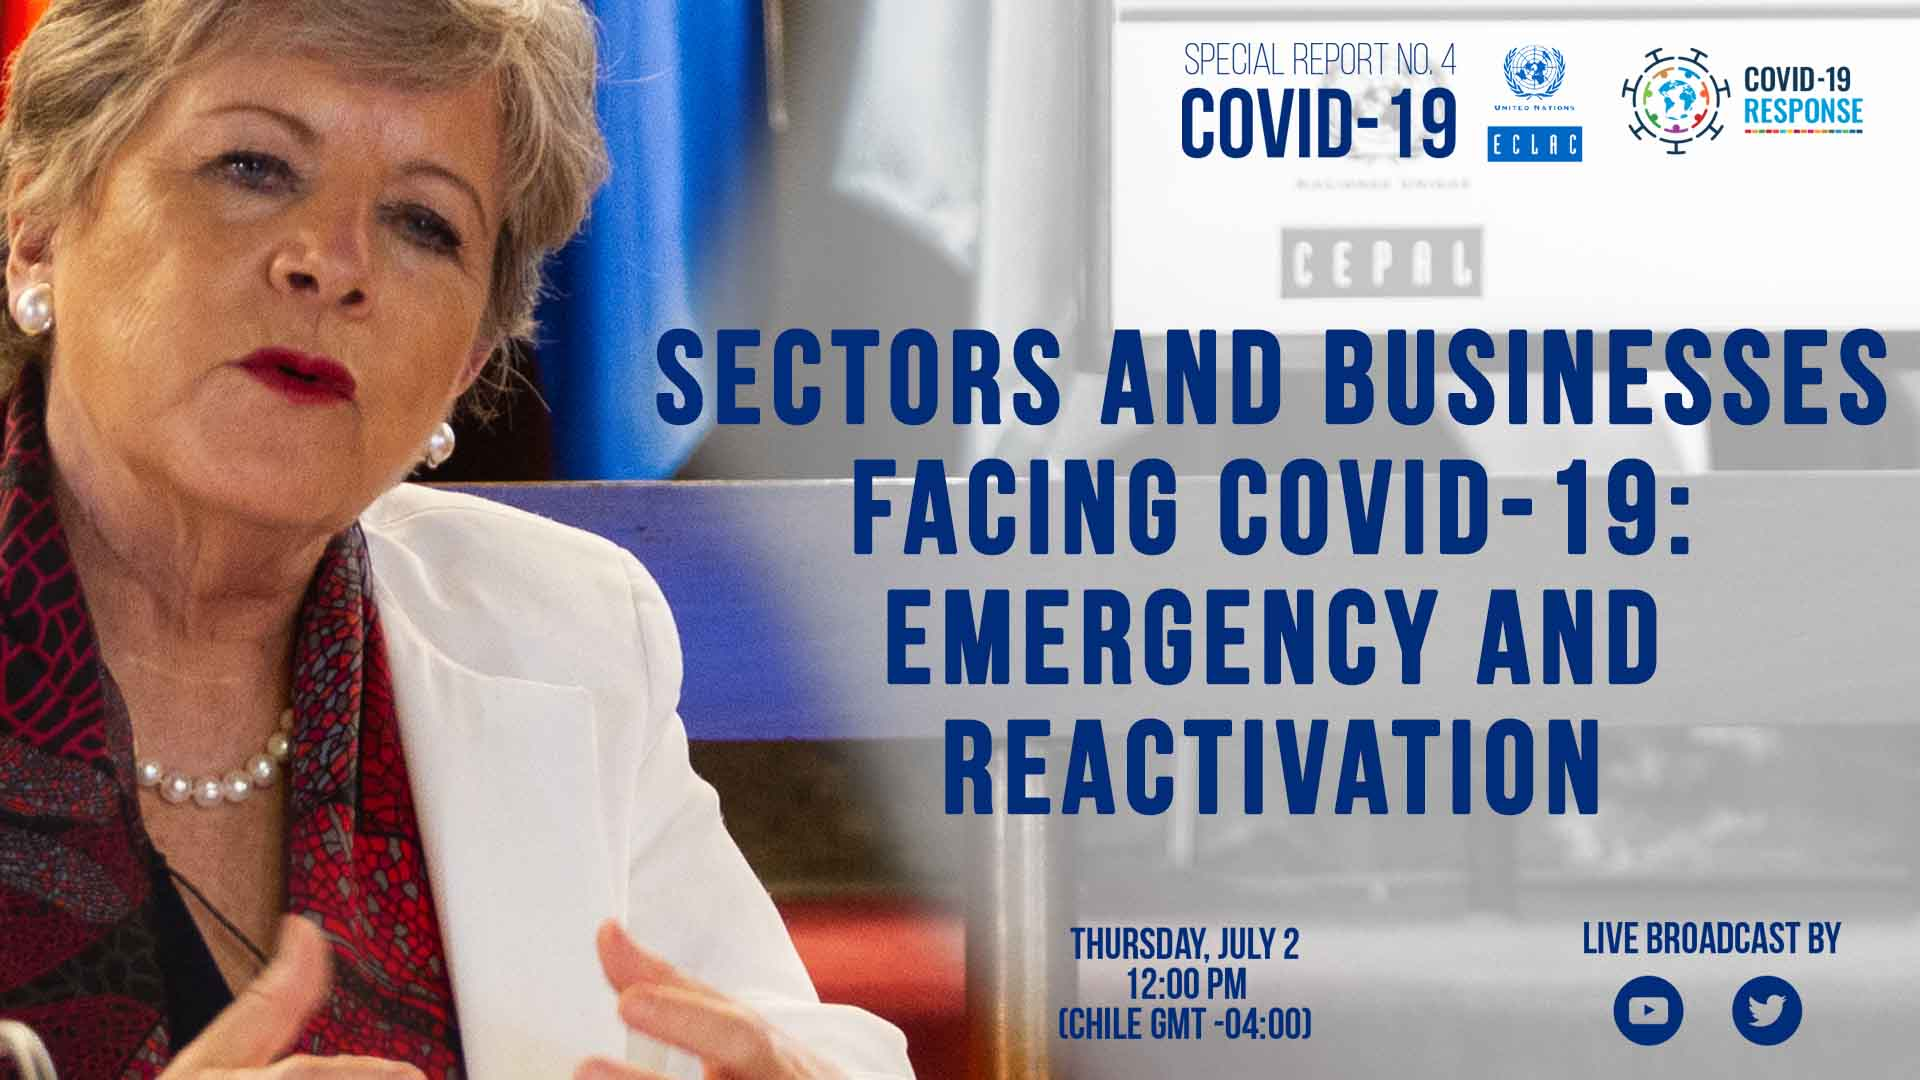 Banner Special Report COVID-19 No 4 Sectors and businesses